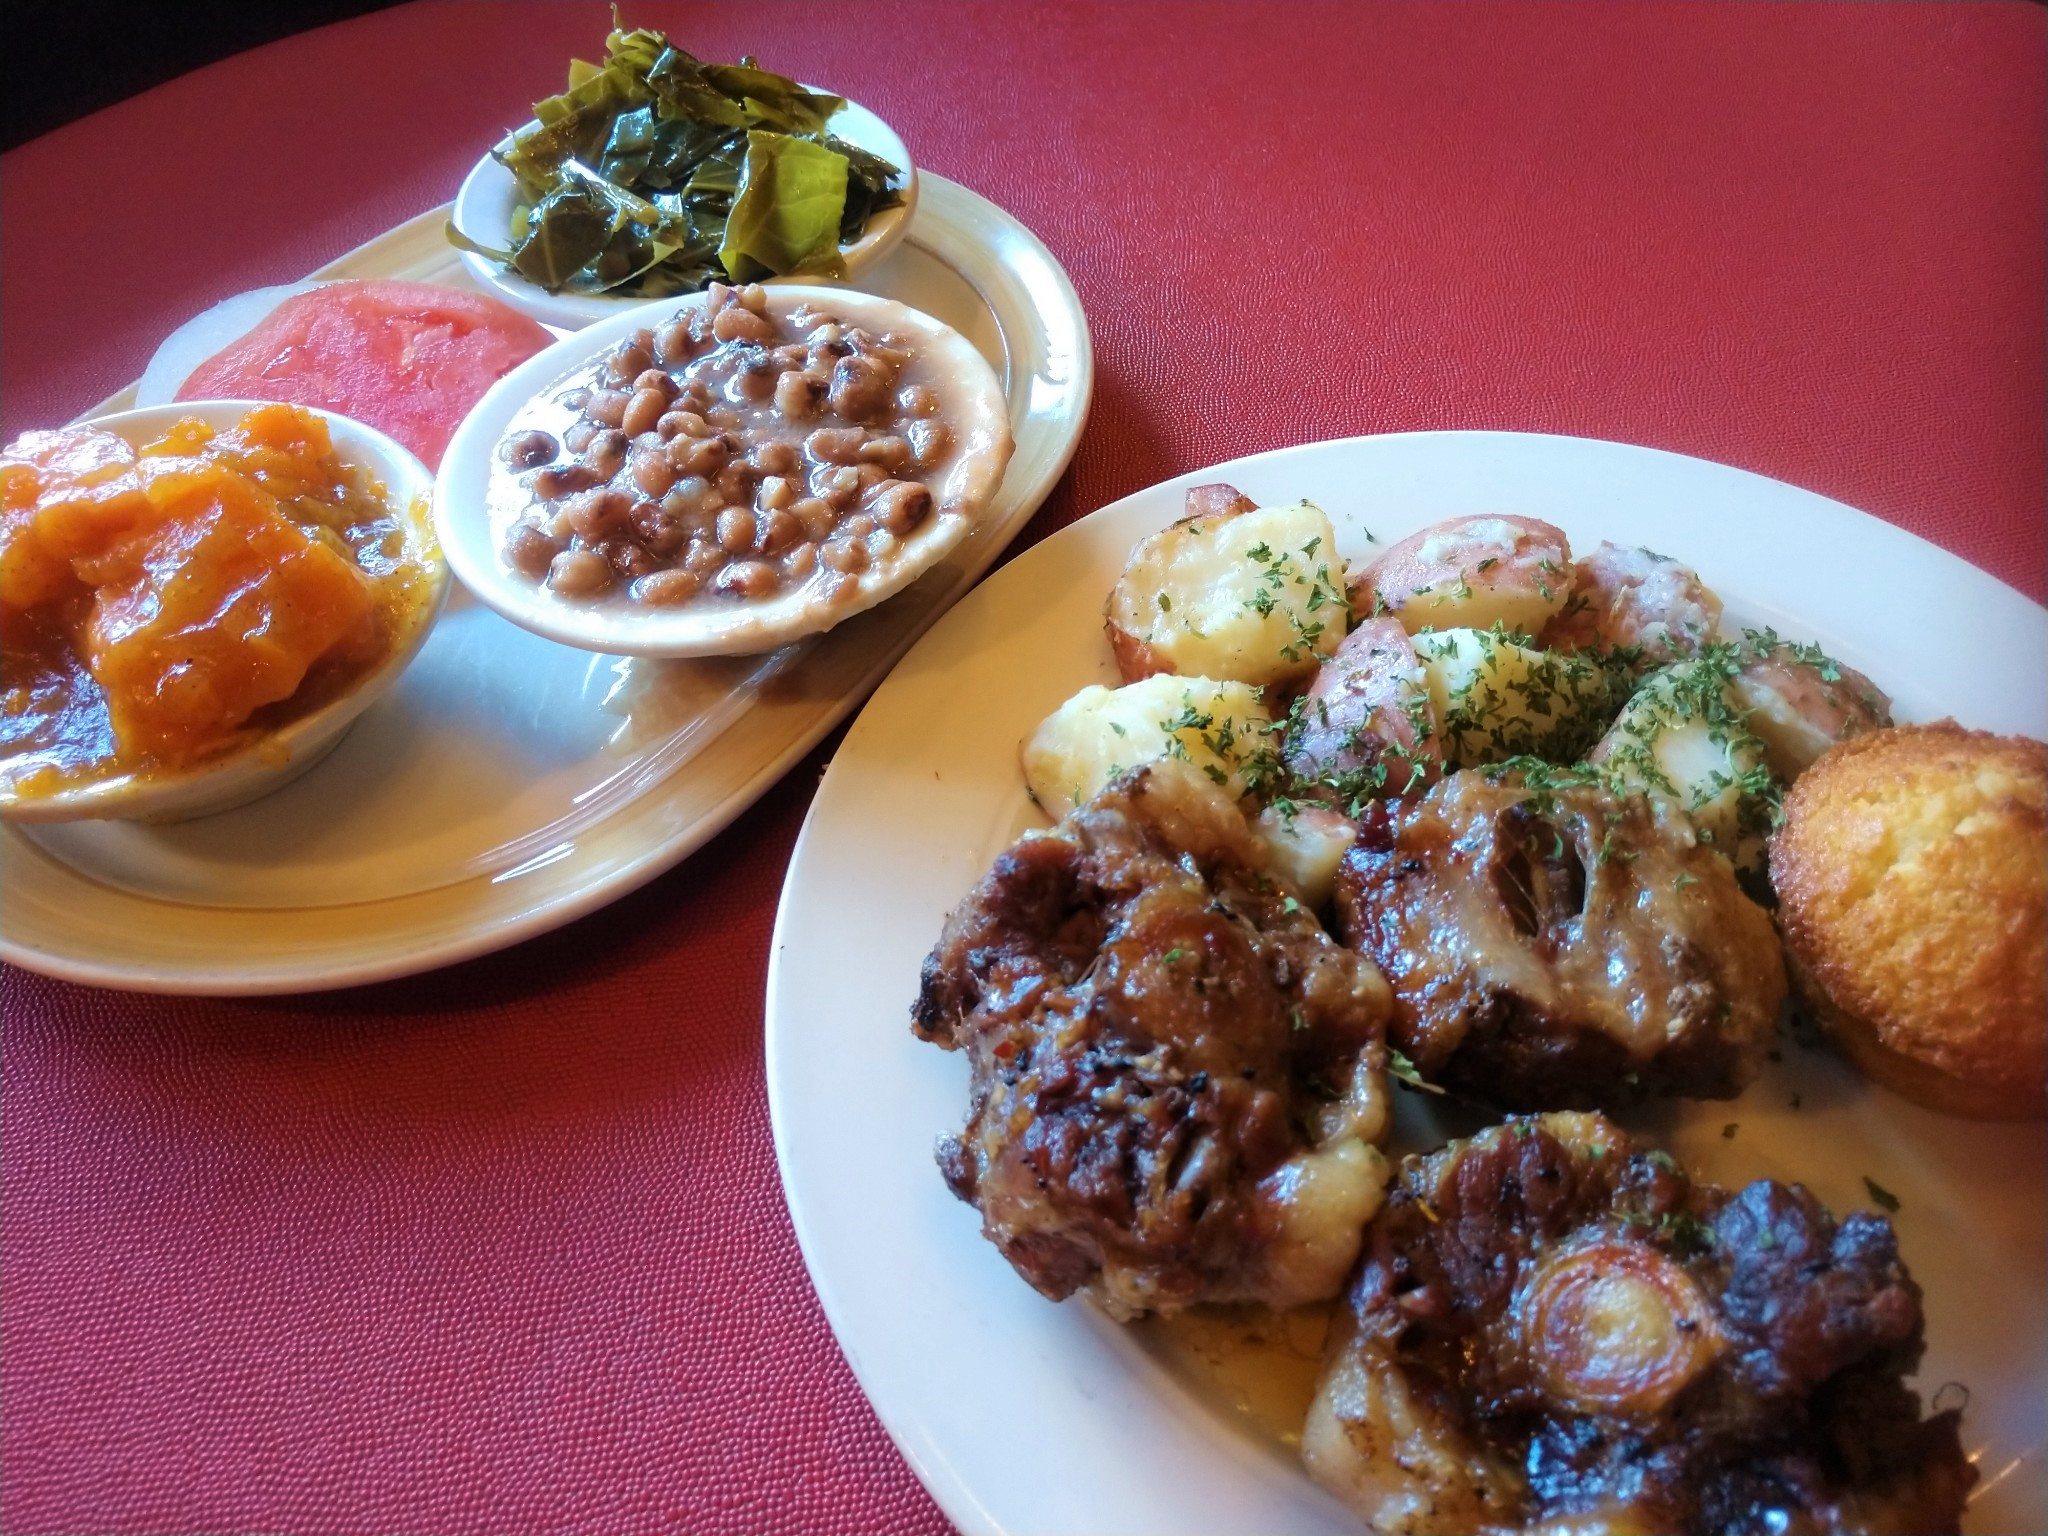 The menu at Herman's in Chattanooga features oxtail, collards, crowder peas, yams and more every Wednesday. (Photo: Anne Braly)